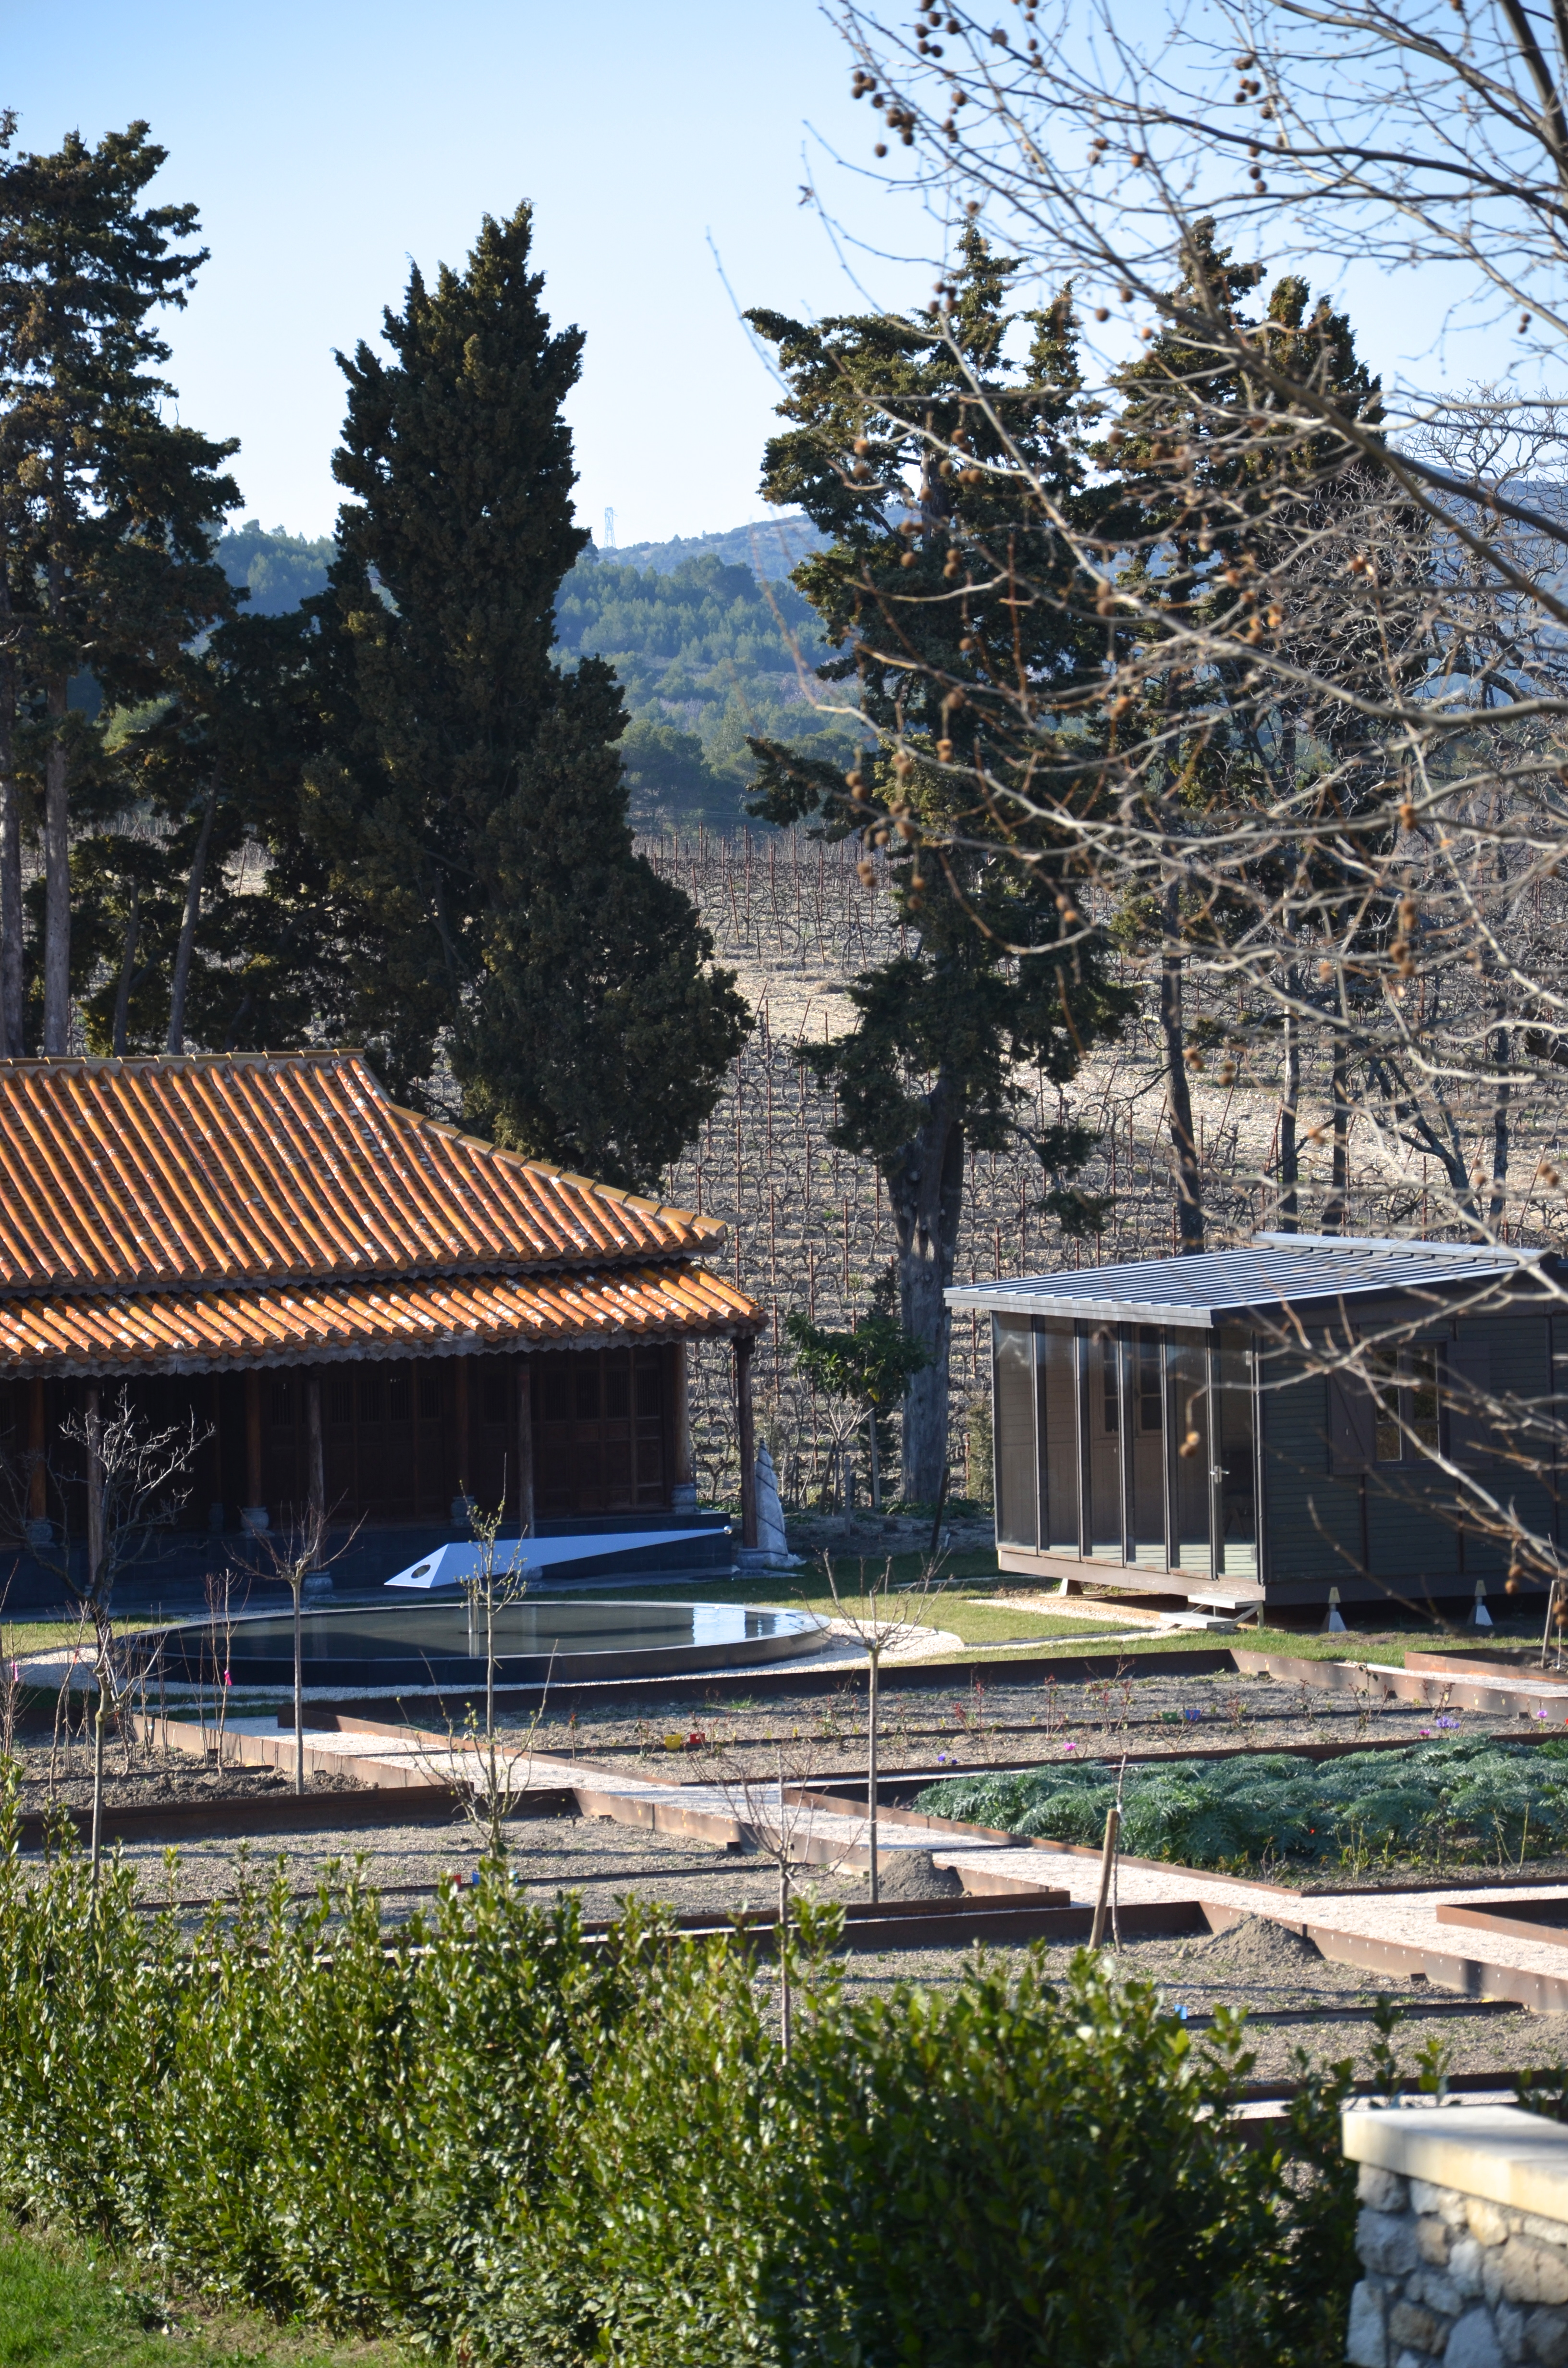 Provence - Chateau La Coste - 04.04.2014 - www.MyFrenchLife.org